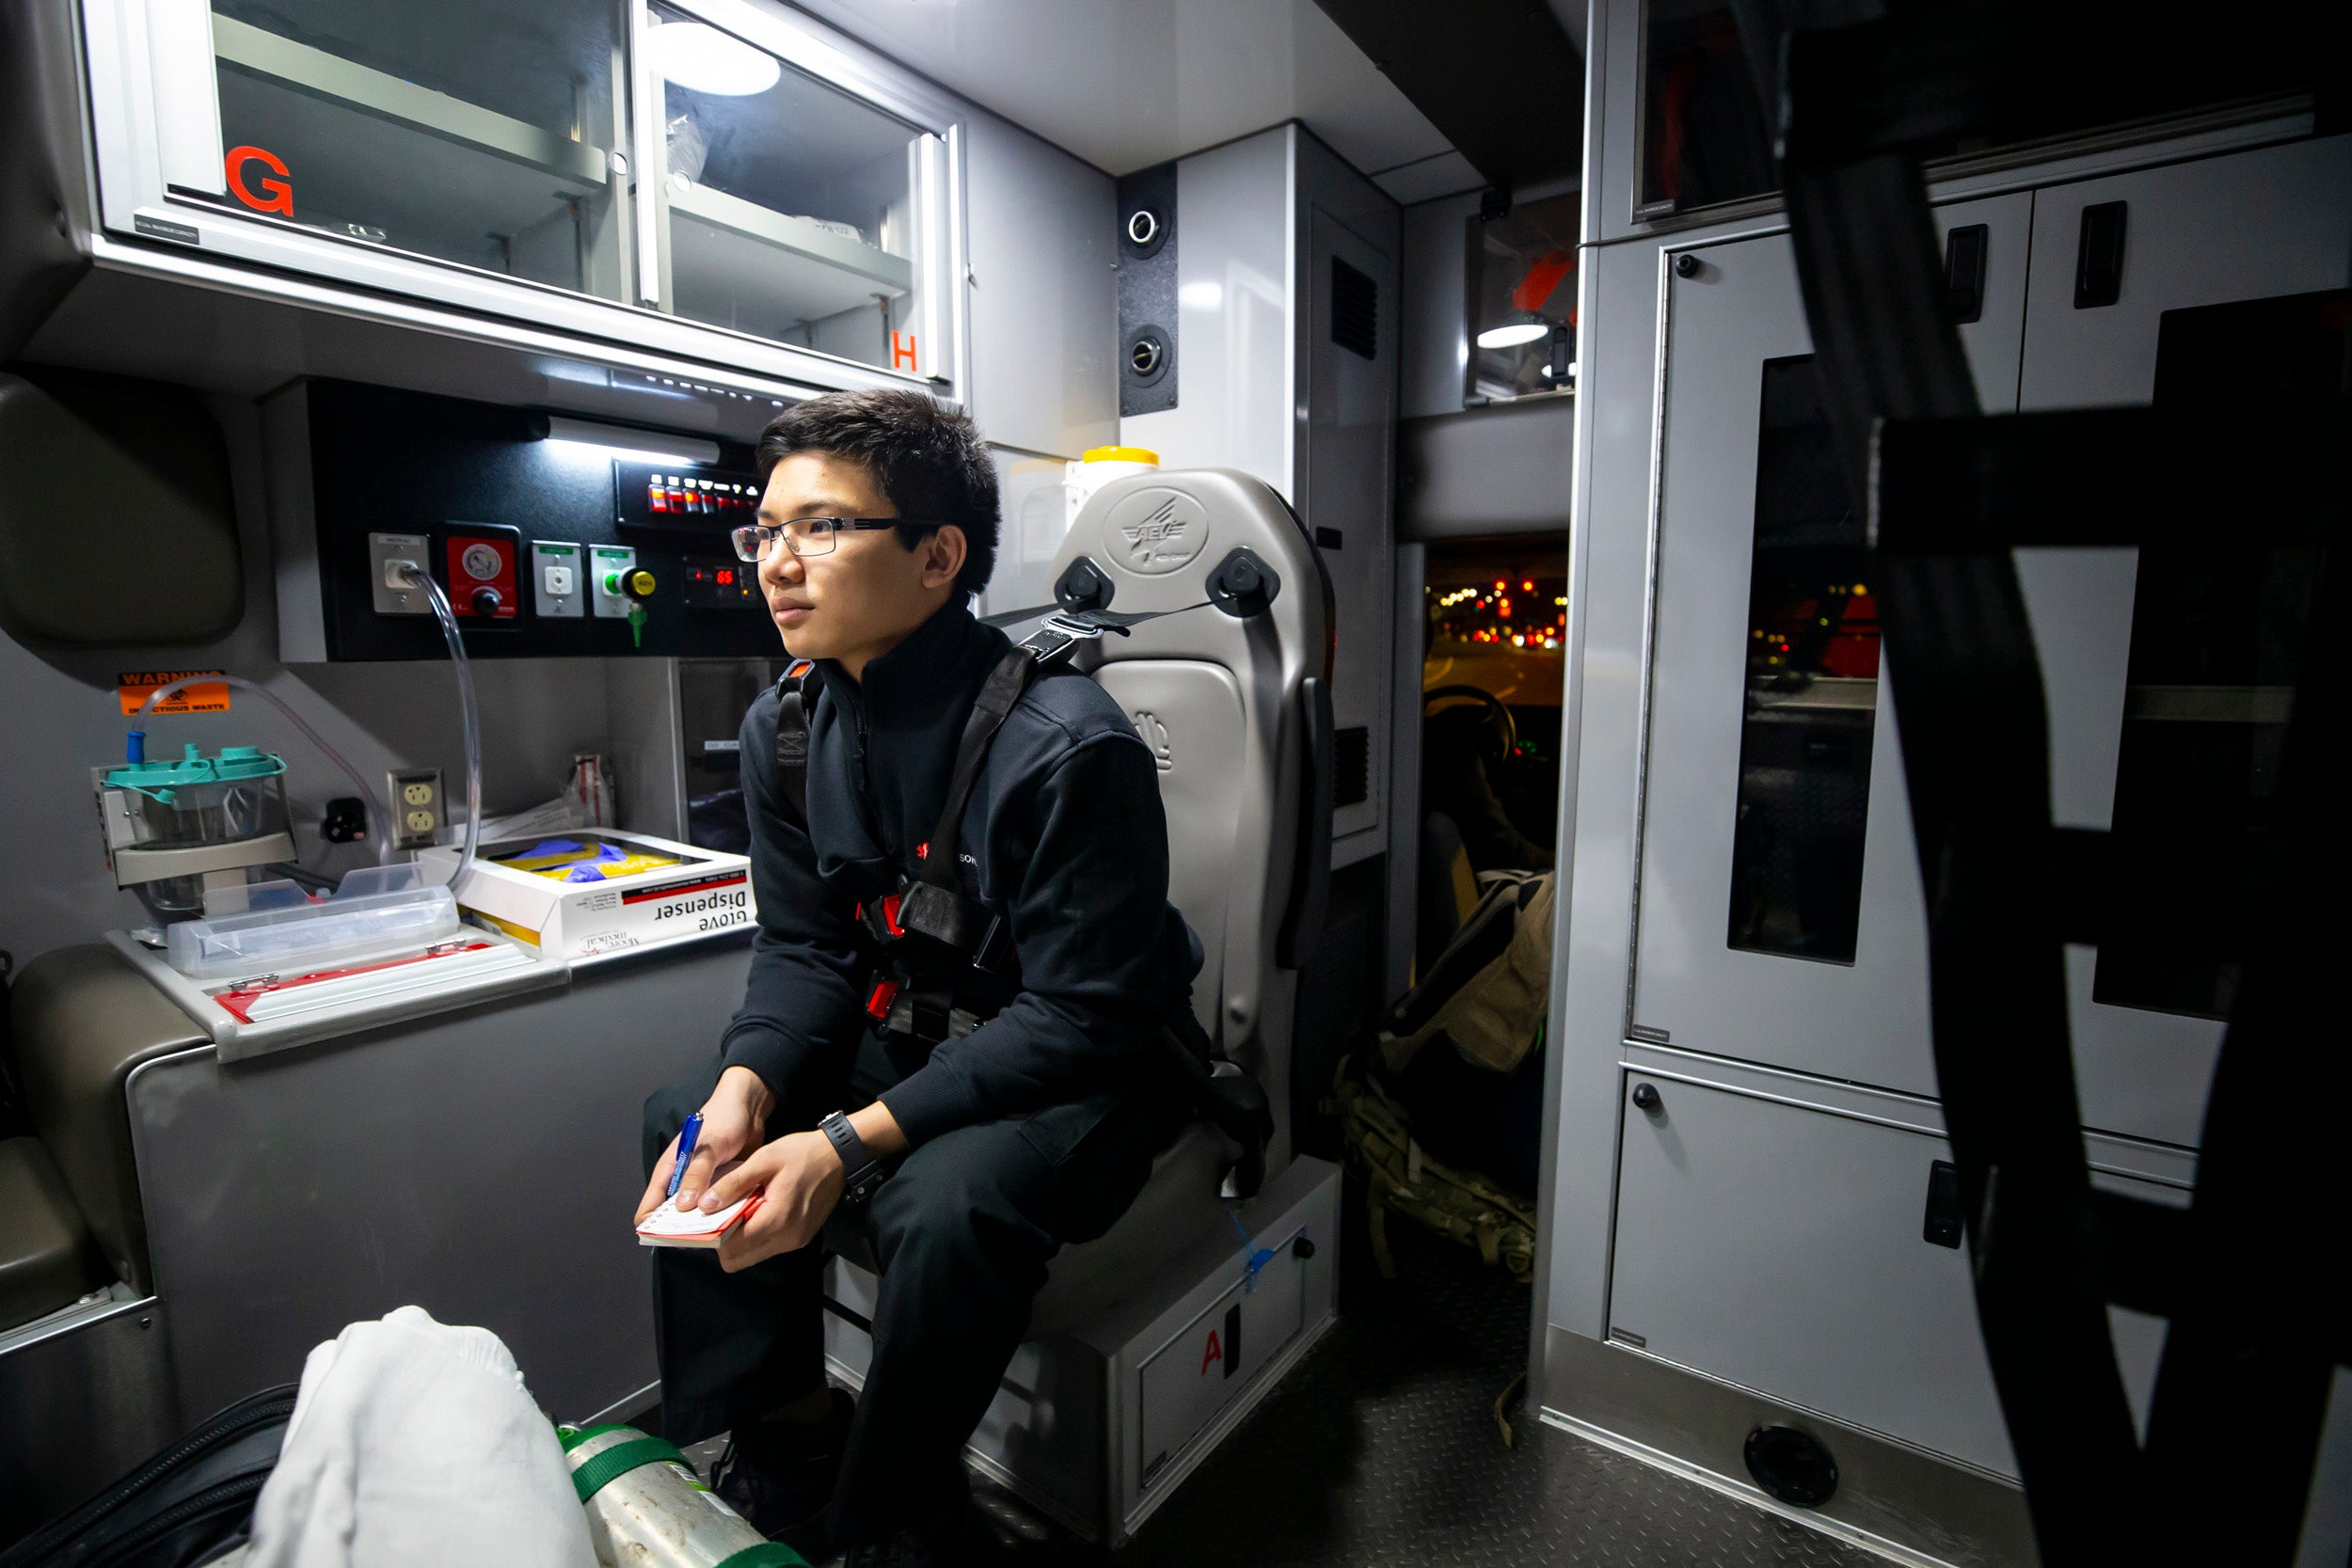 Benjamin Ho takes notes in the back of an ambulance.